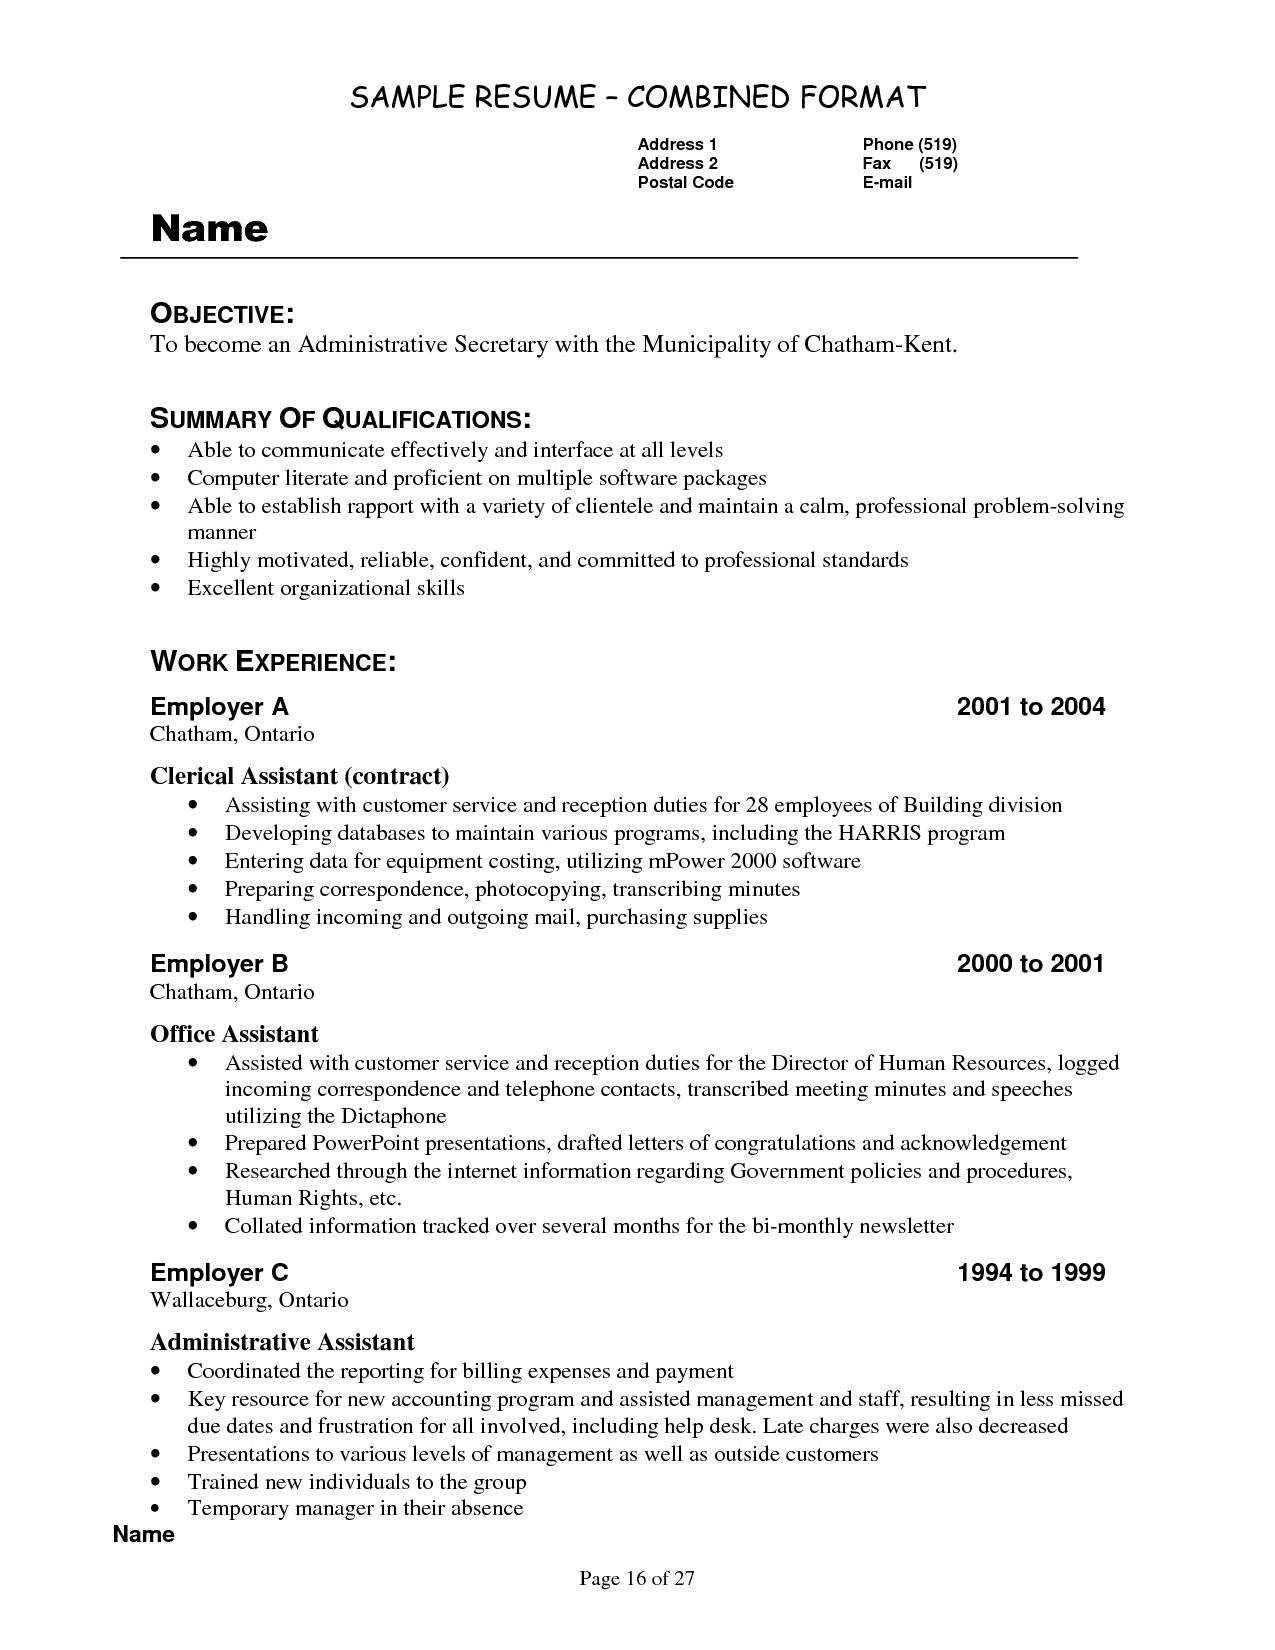 Staff Appraisal Template For Medical Receptionist